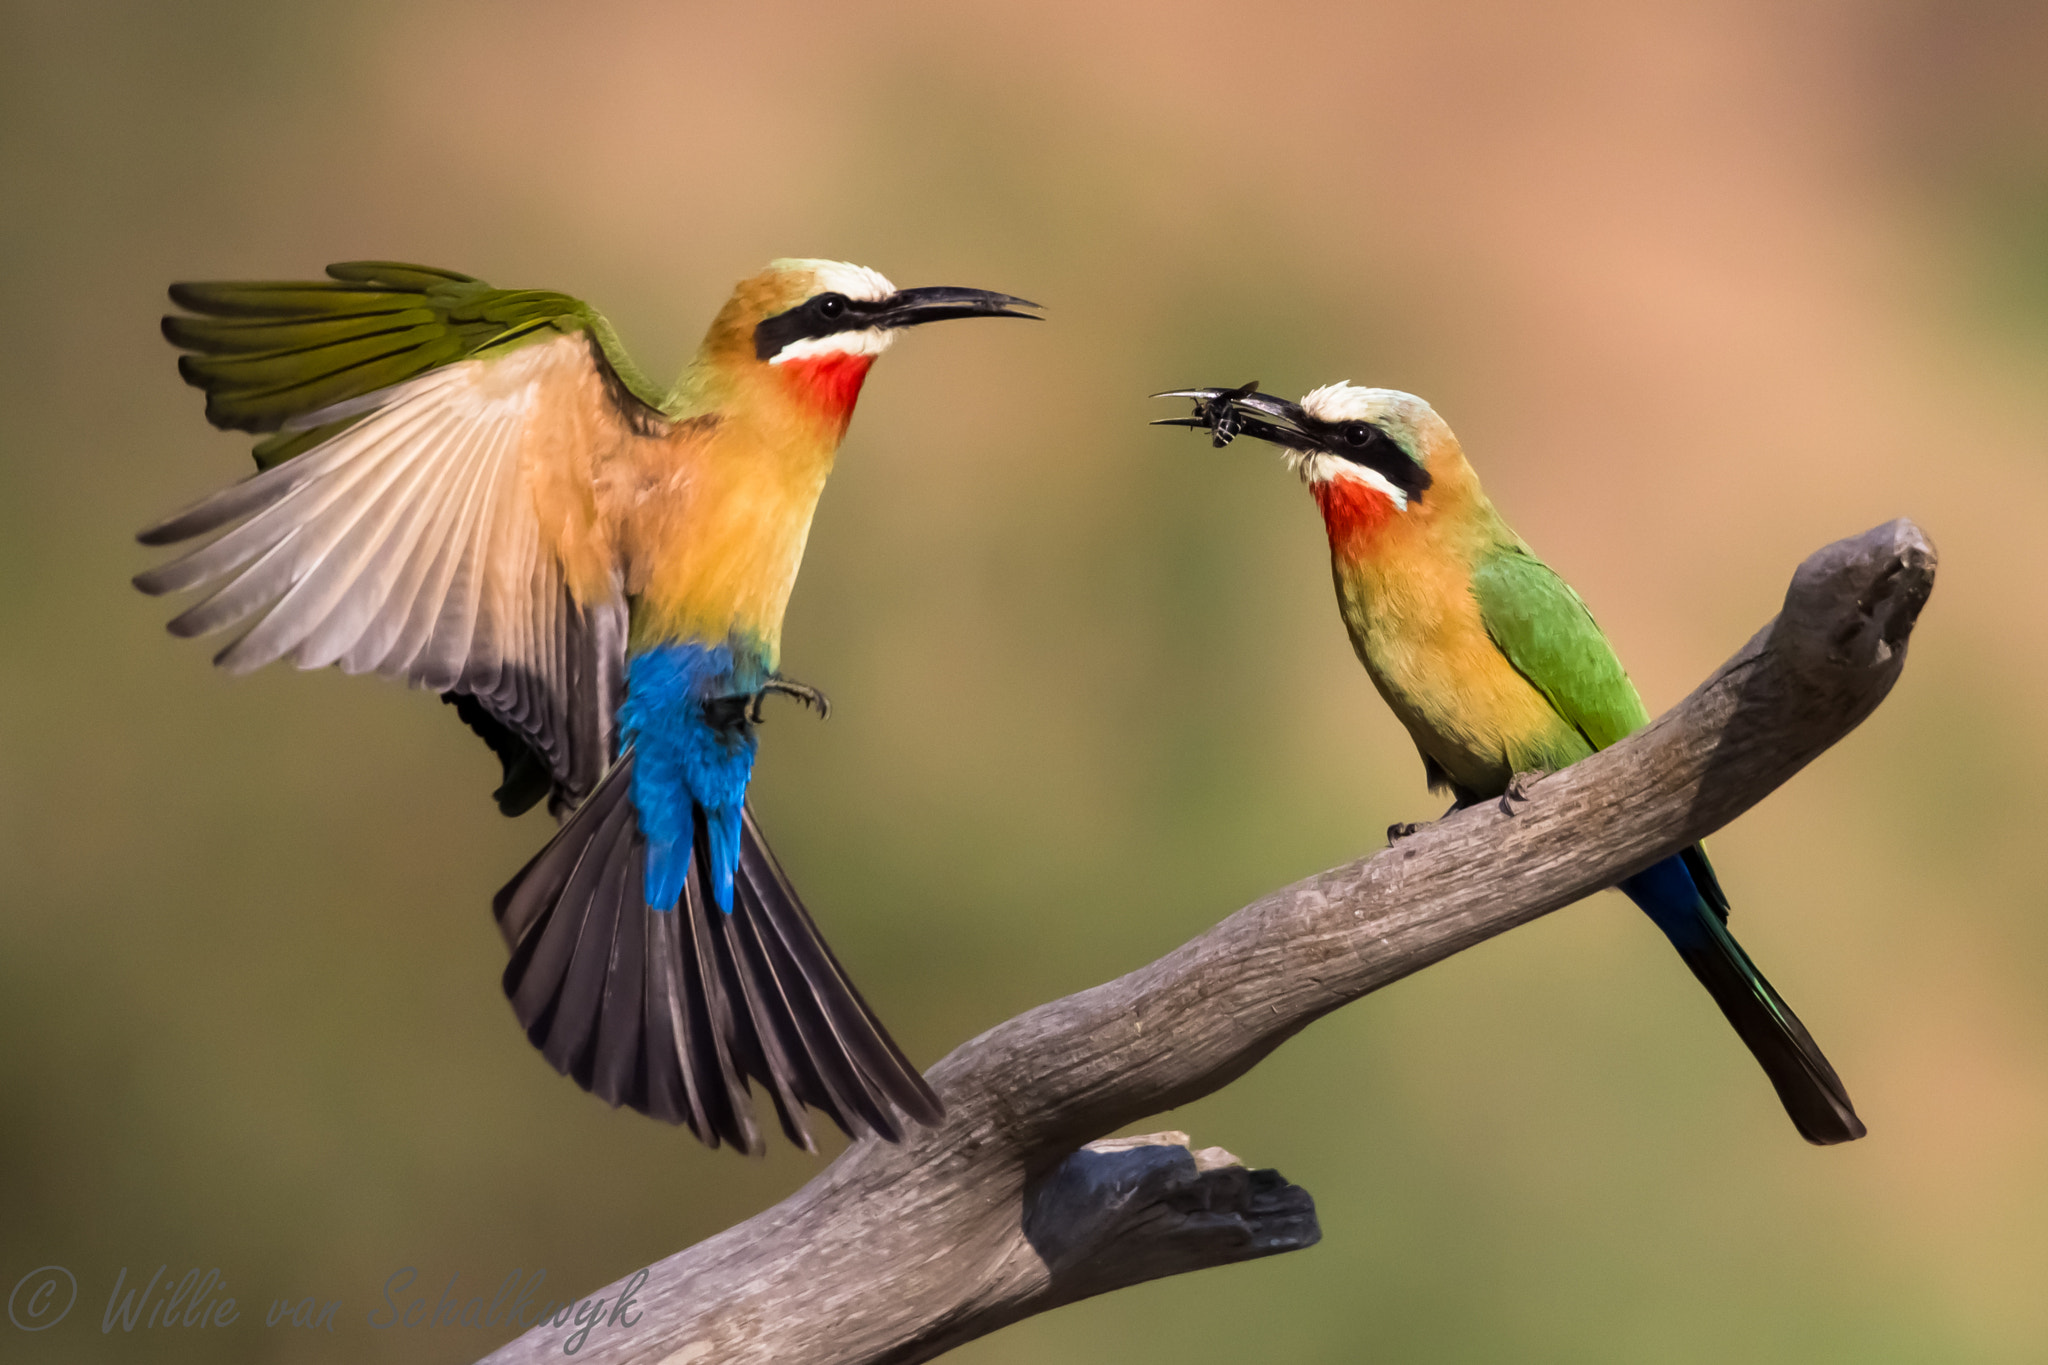 Photograph White-fronted Bee-eaters by Willie van Schalkwyk on 500px